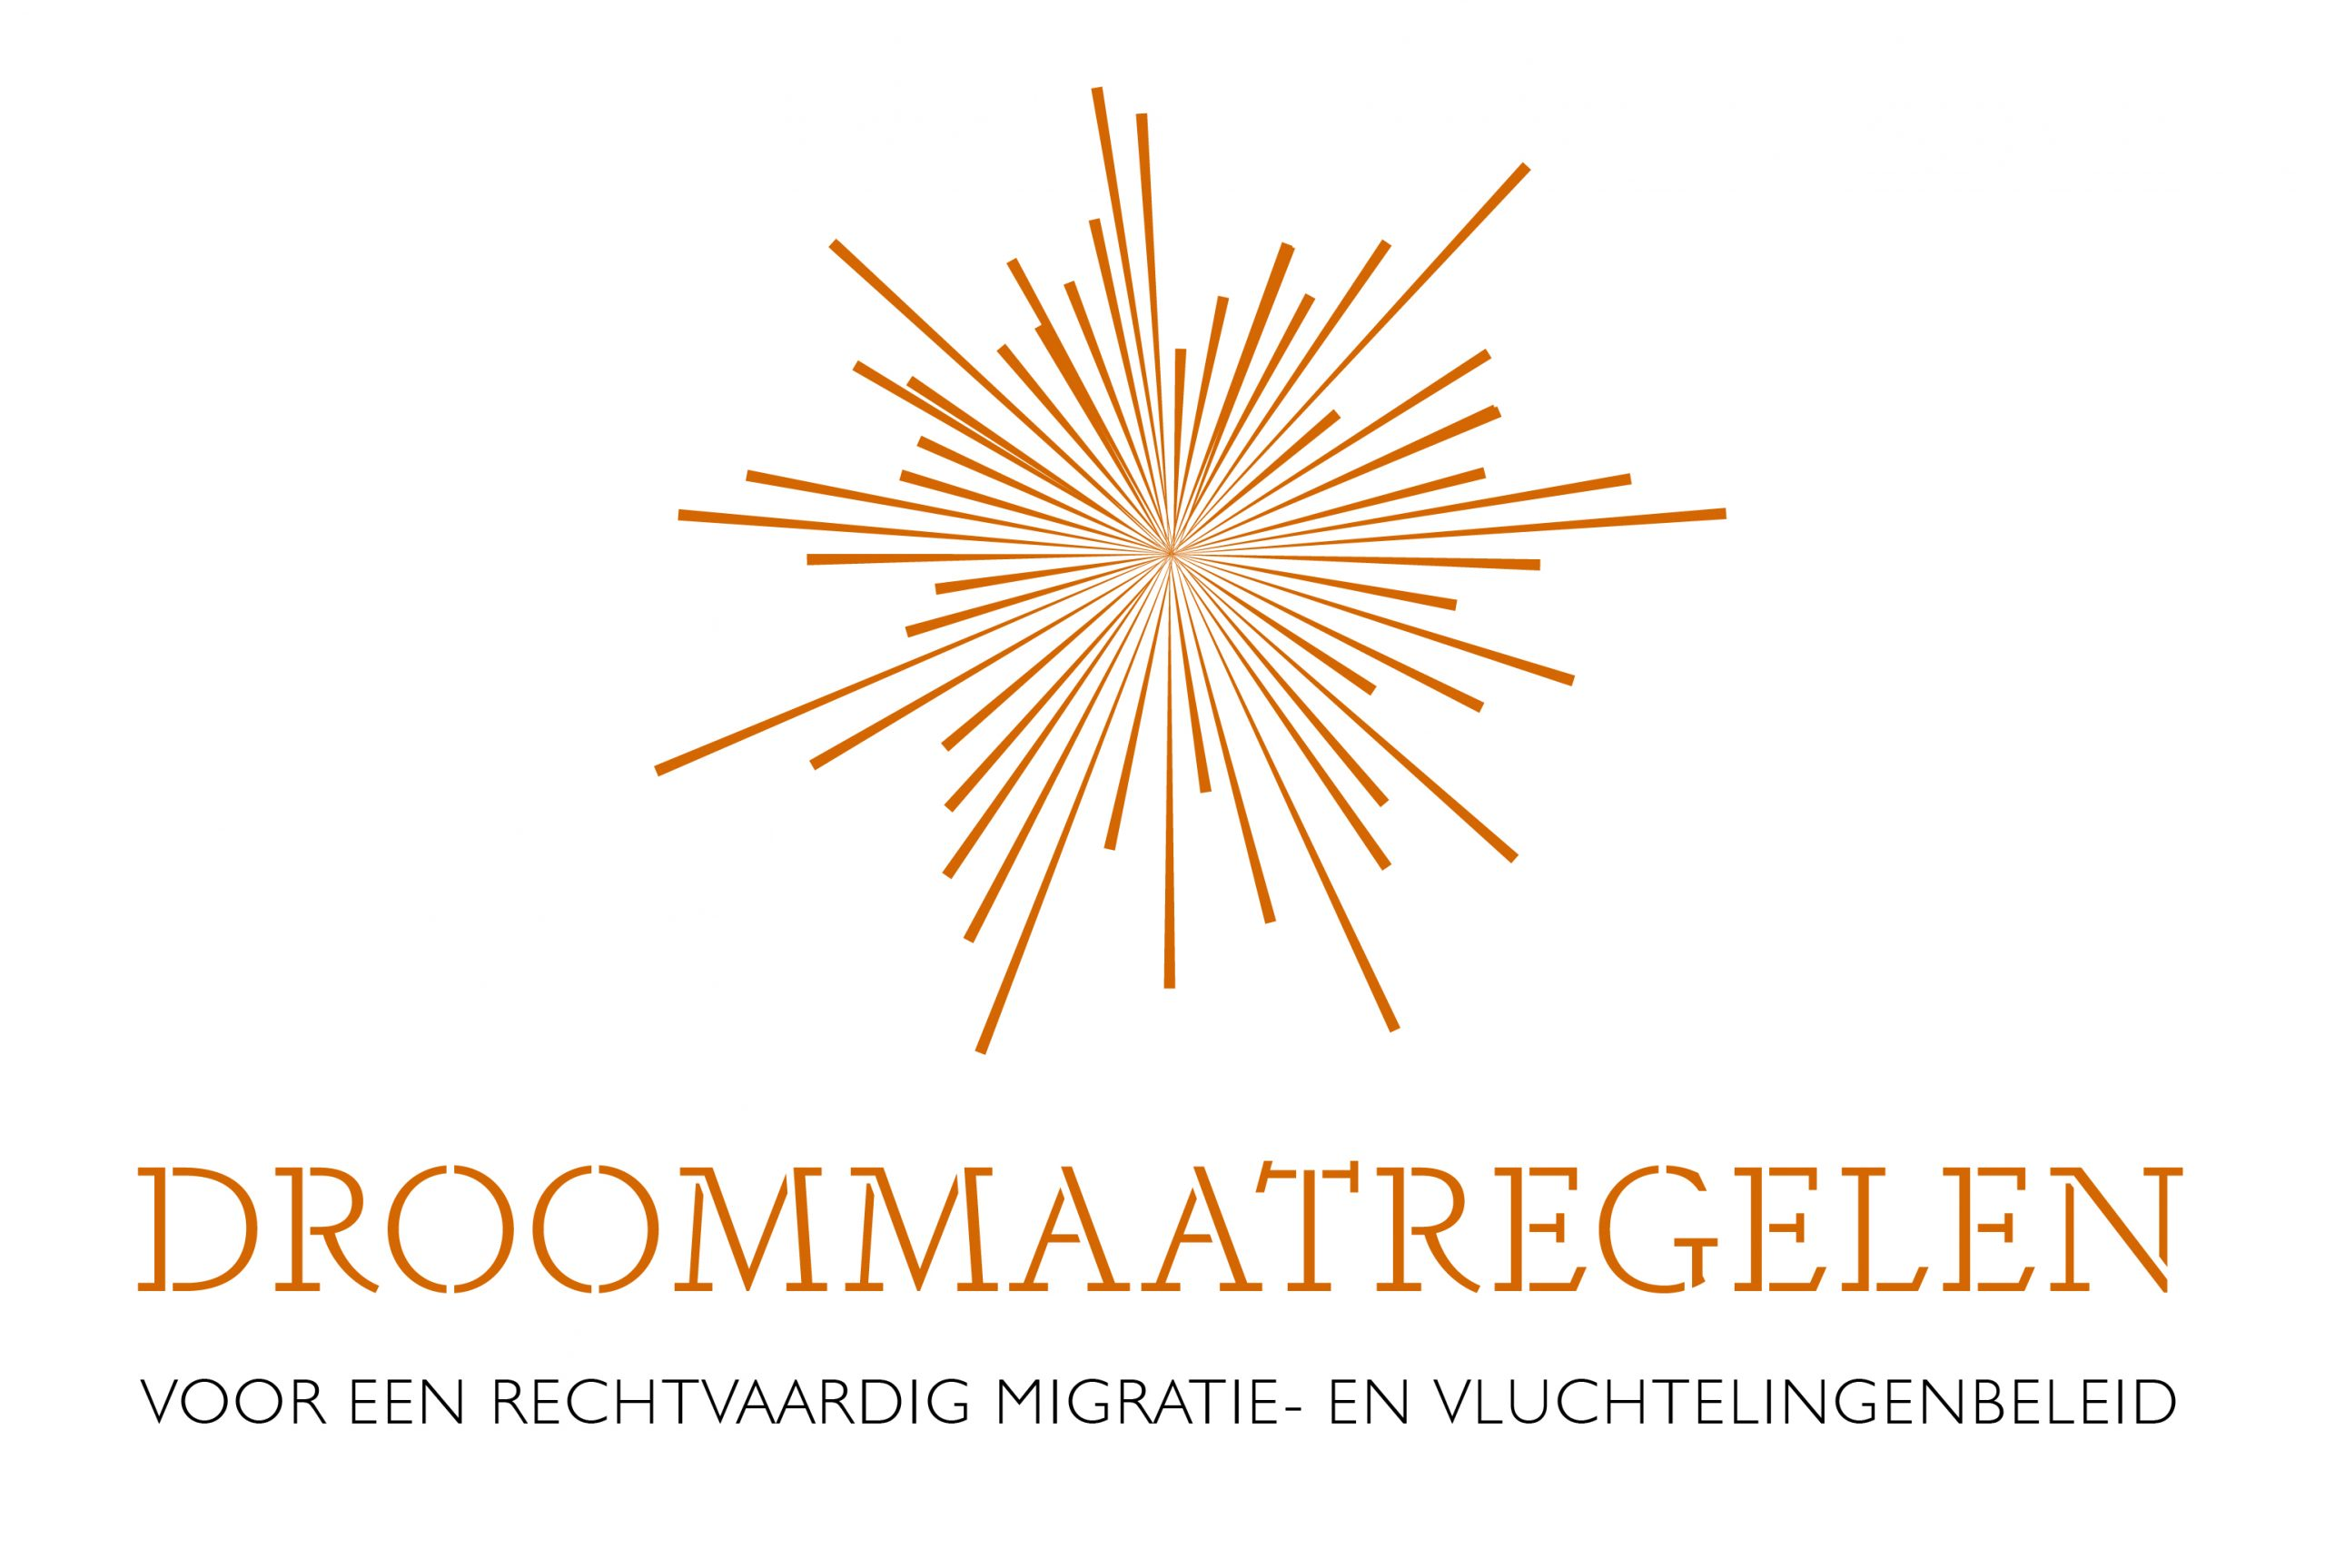 https://viceversaonline.nl/site/wp-content/uploads/2018/03/Migratie_LogoDEF_HR-scaled.jpg